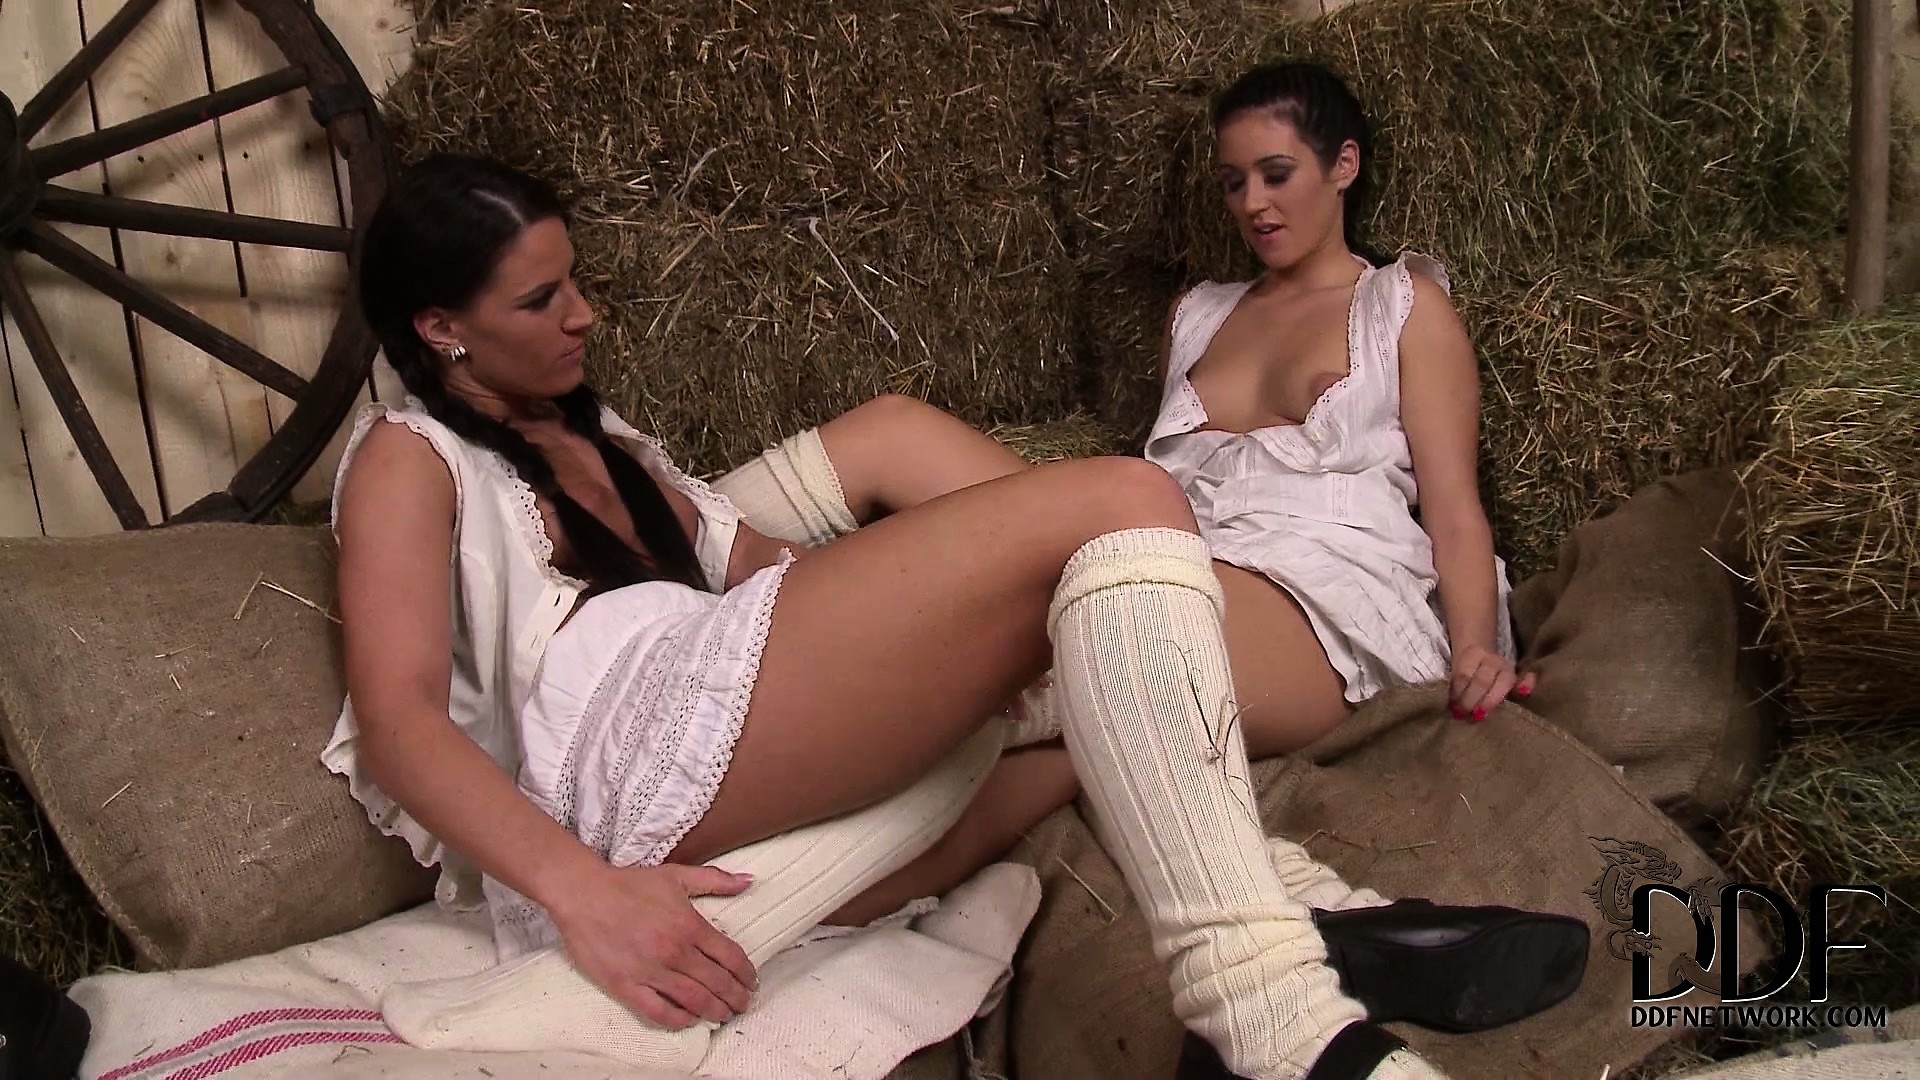 Porn Tube of Two Lesbian Farm Girls Meet In The Barn For Some Playful Foot Work